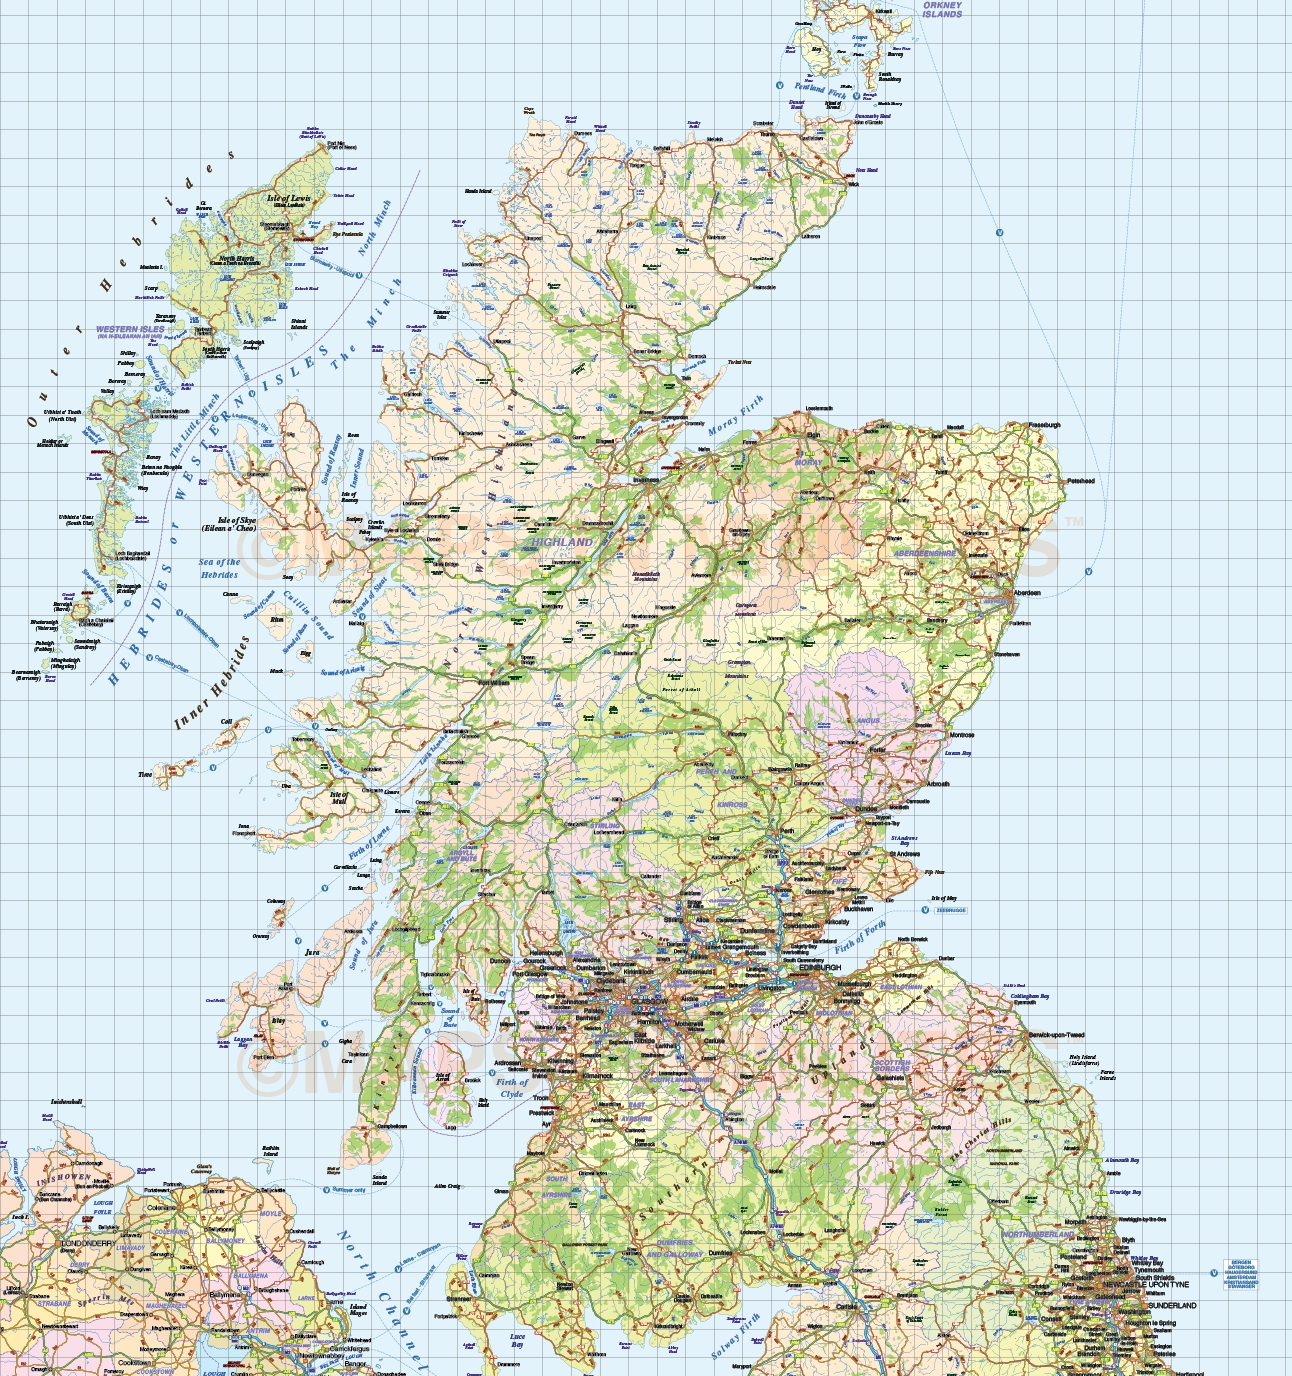 British Isles 1st level Political Road Rail map 750000 scale in